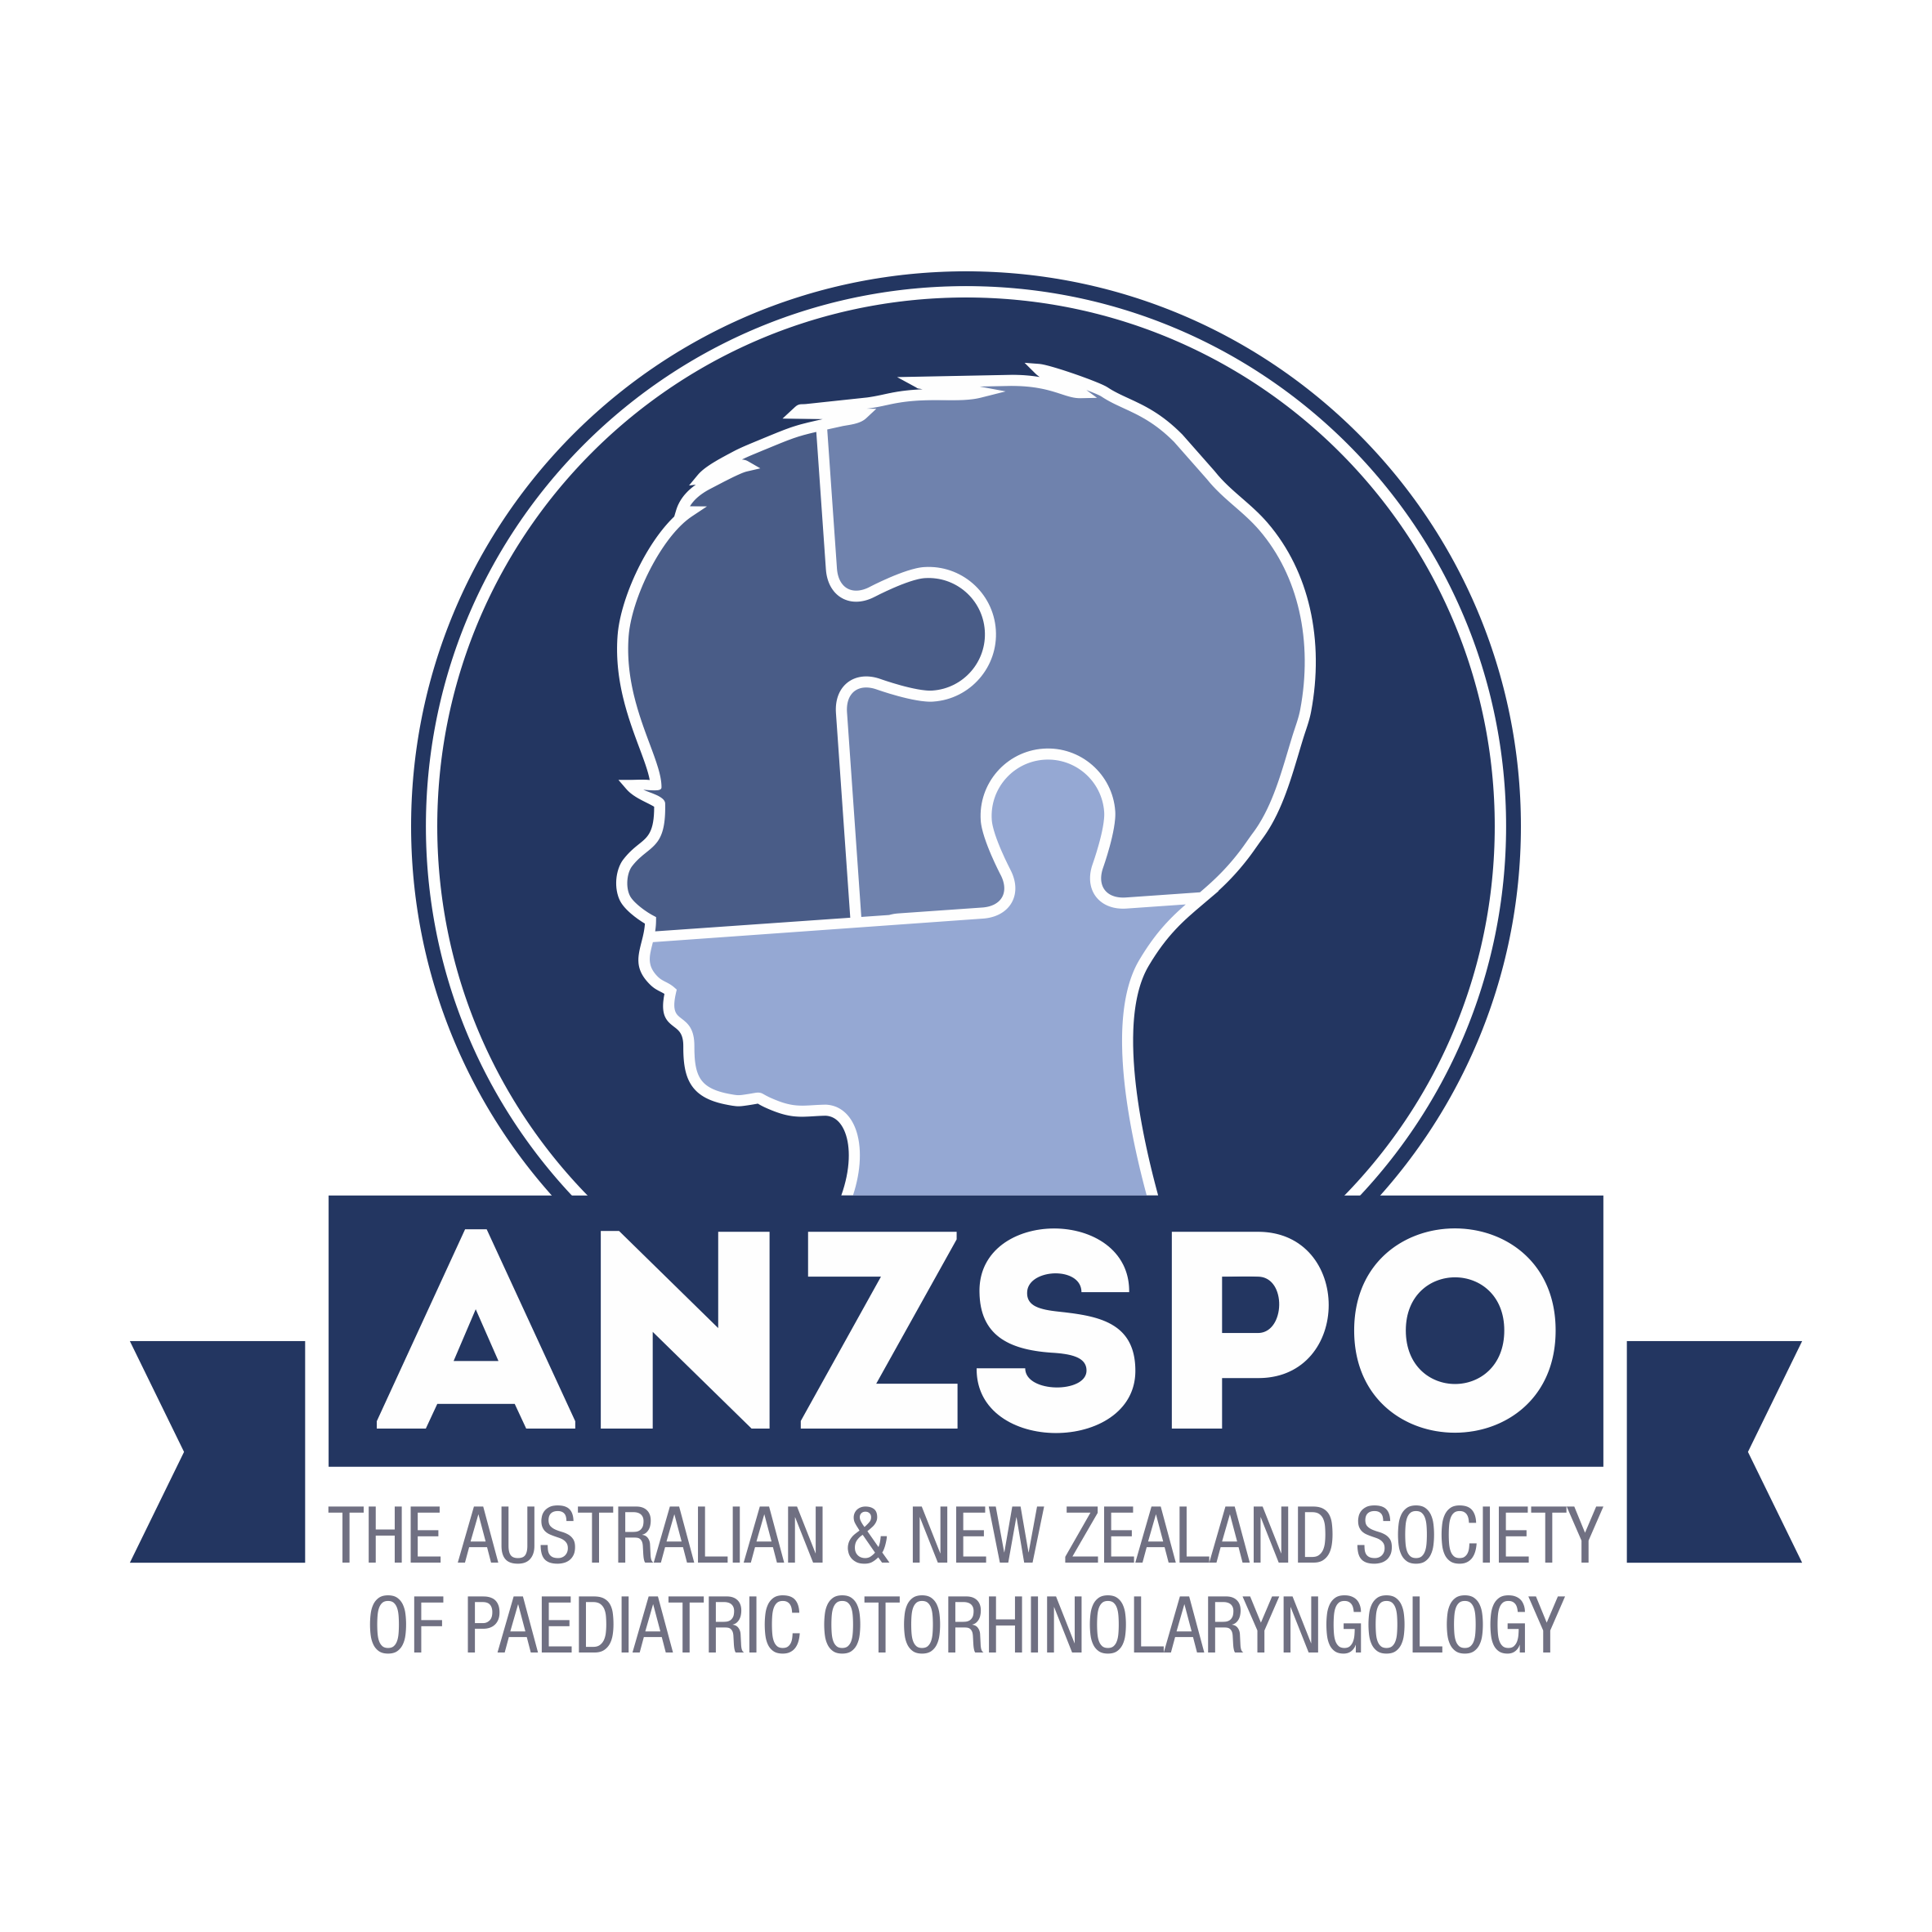 Australian New Zealand Society of Paediatric Otorhinolaryngology